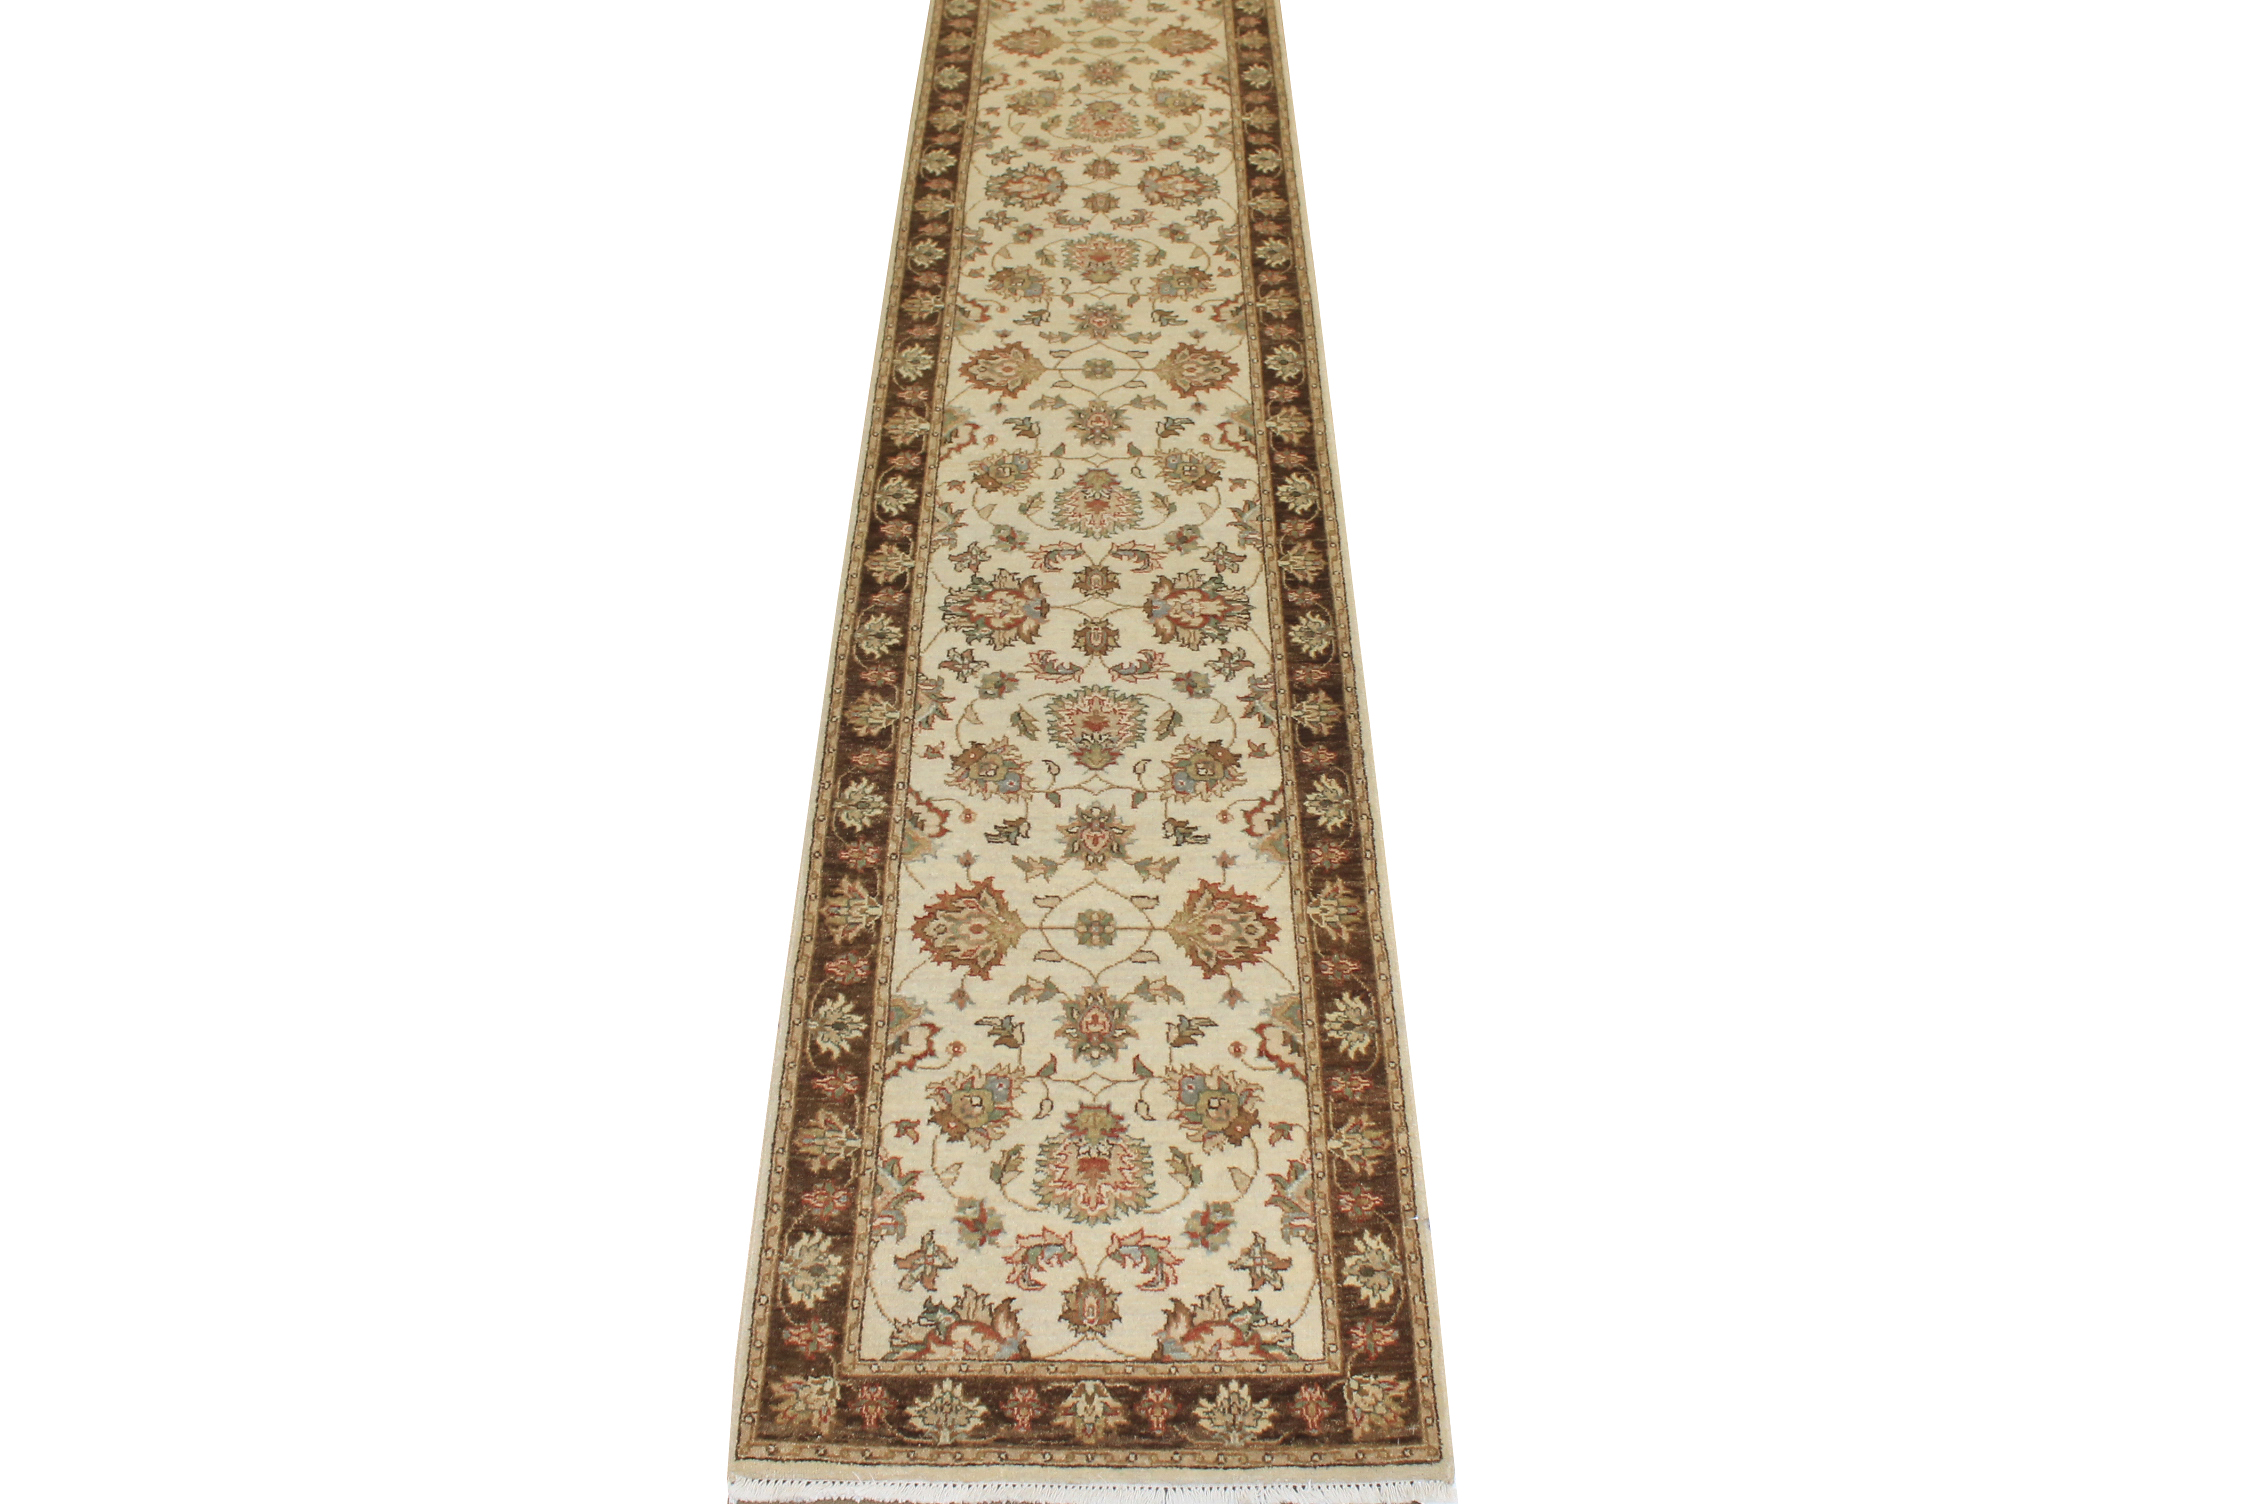 12 ft. Runner Traditional Hand Knotted Wool Area Rug - MR17145